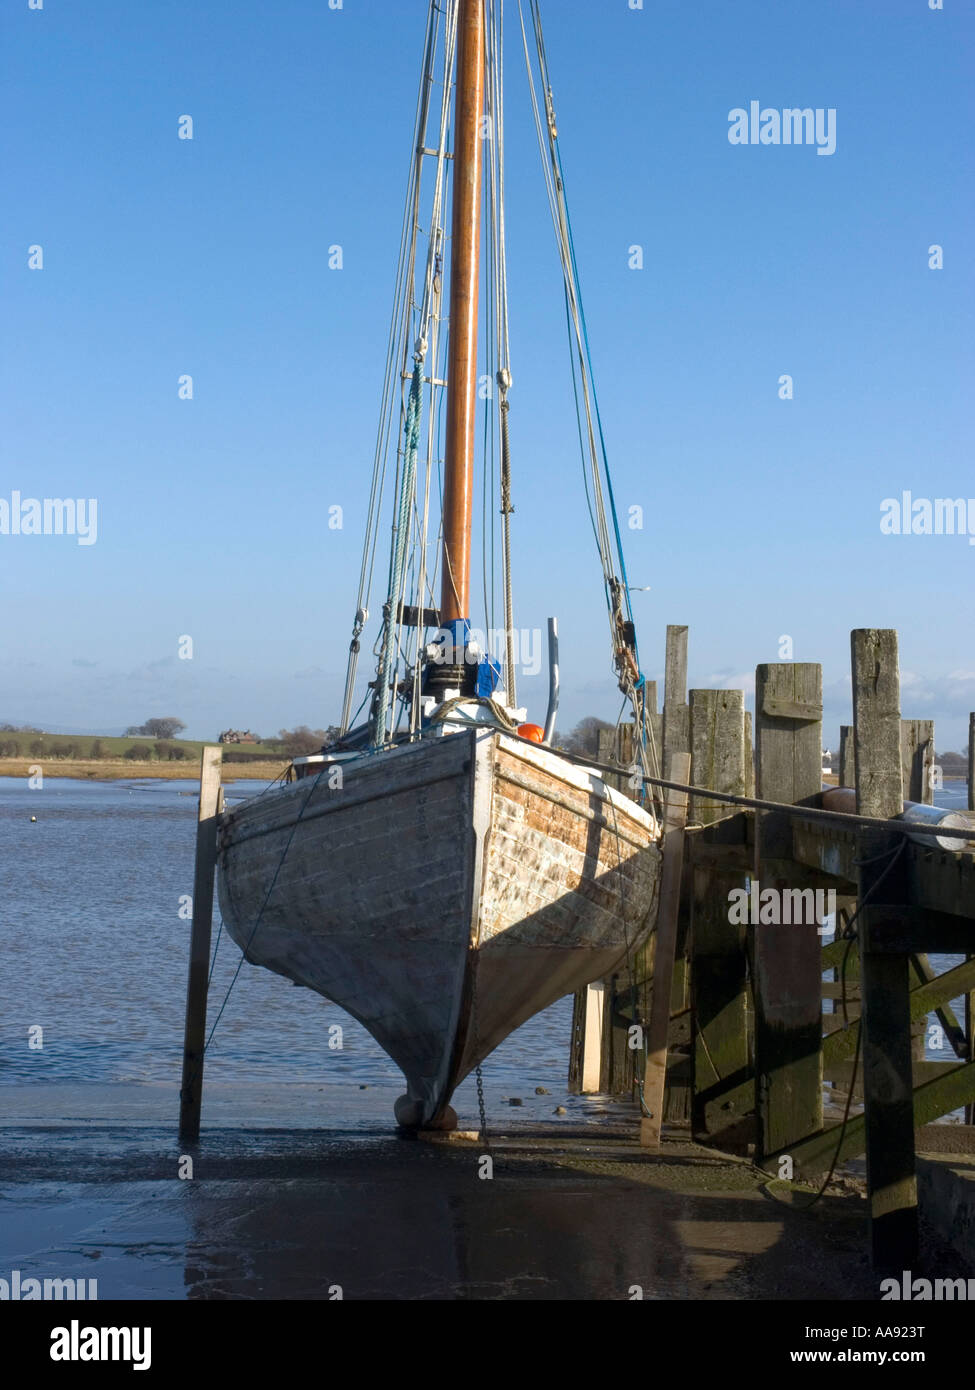 Ploughboy on the slipway on the River Wyre Estuary at Skippool - Stock Image